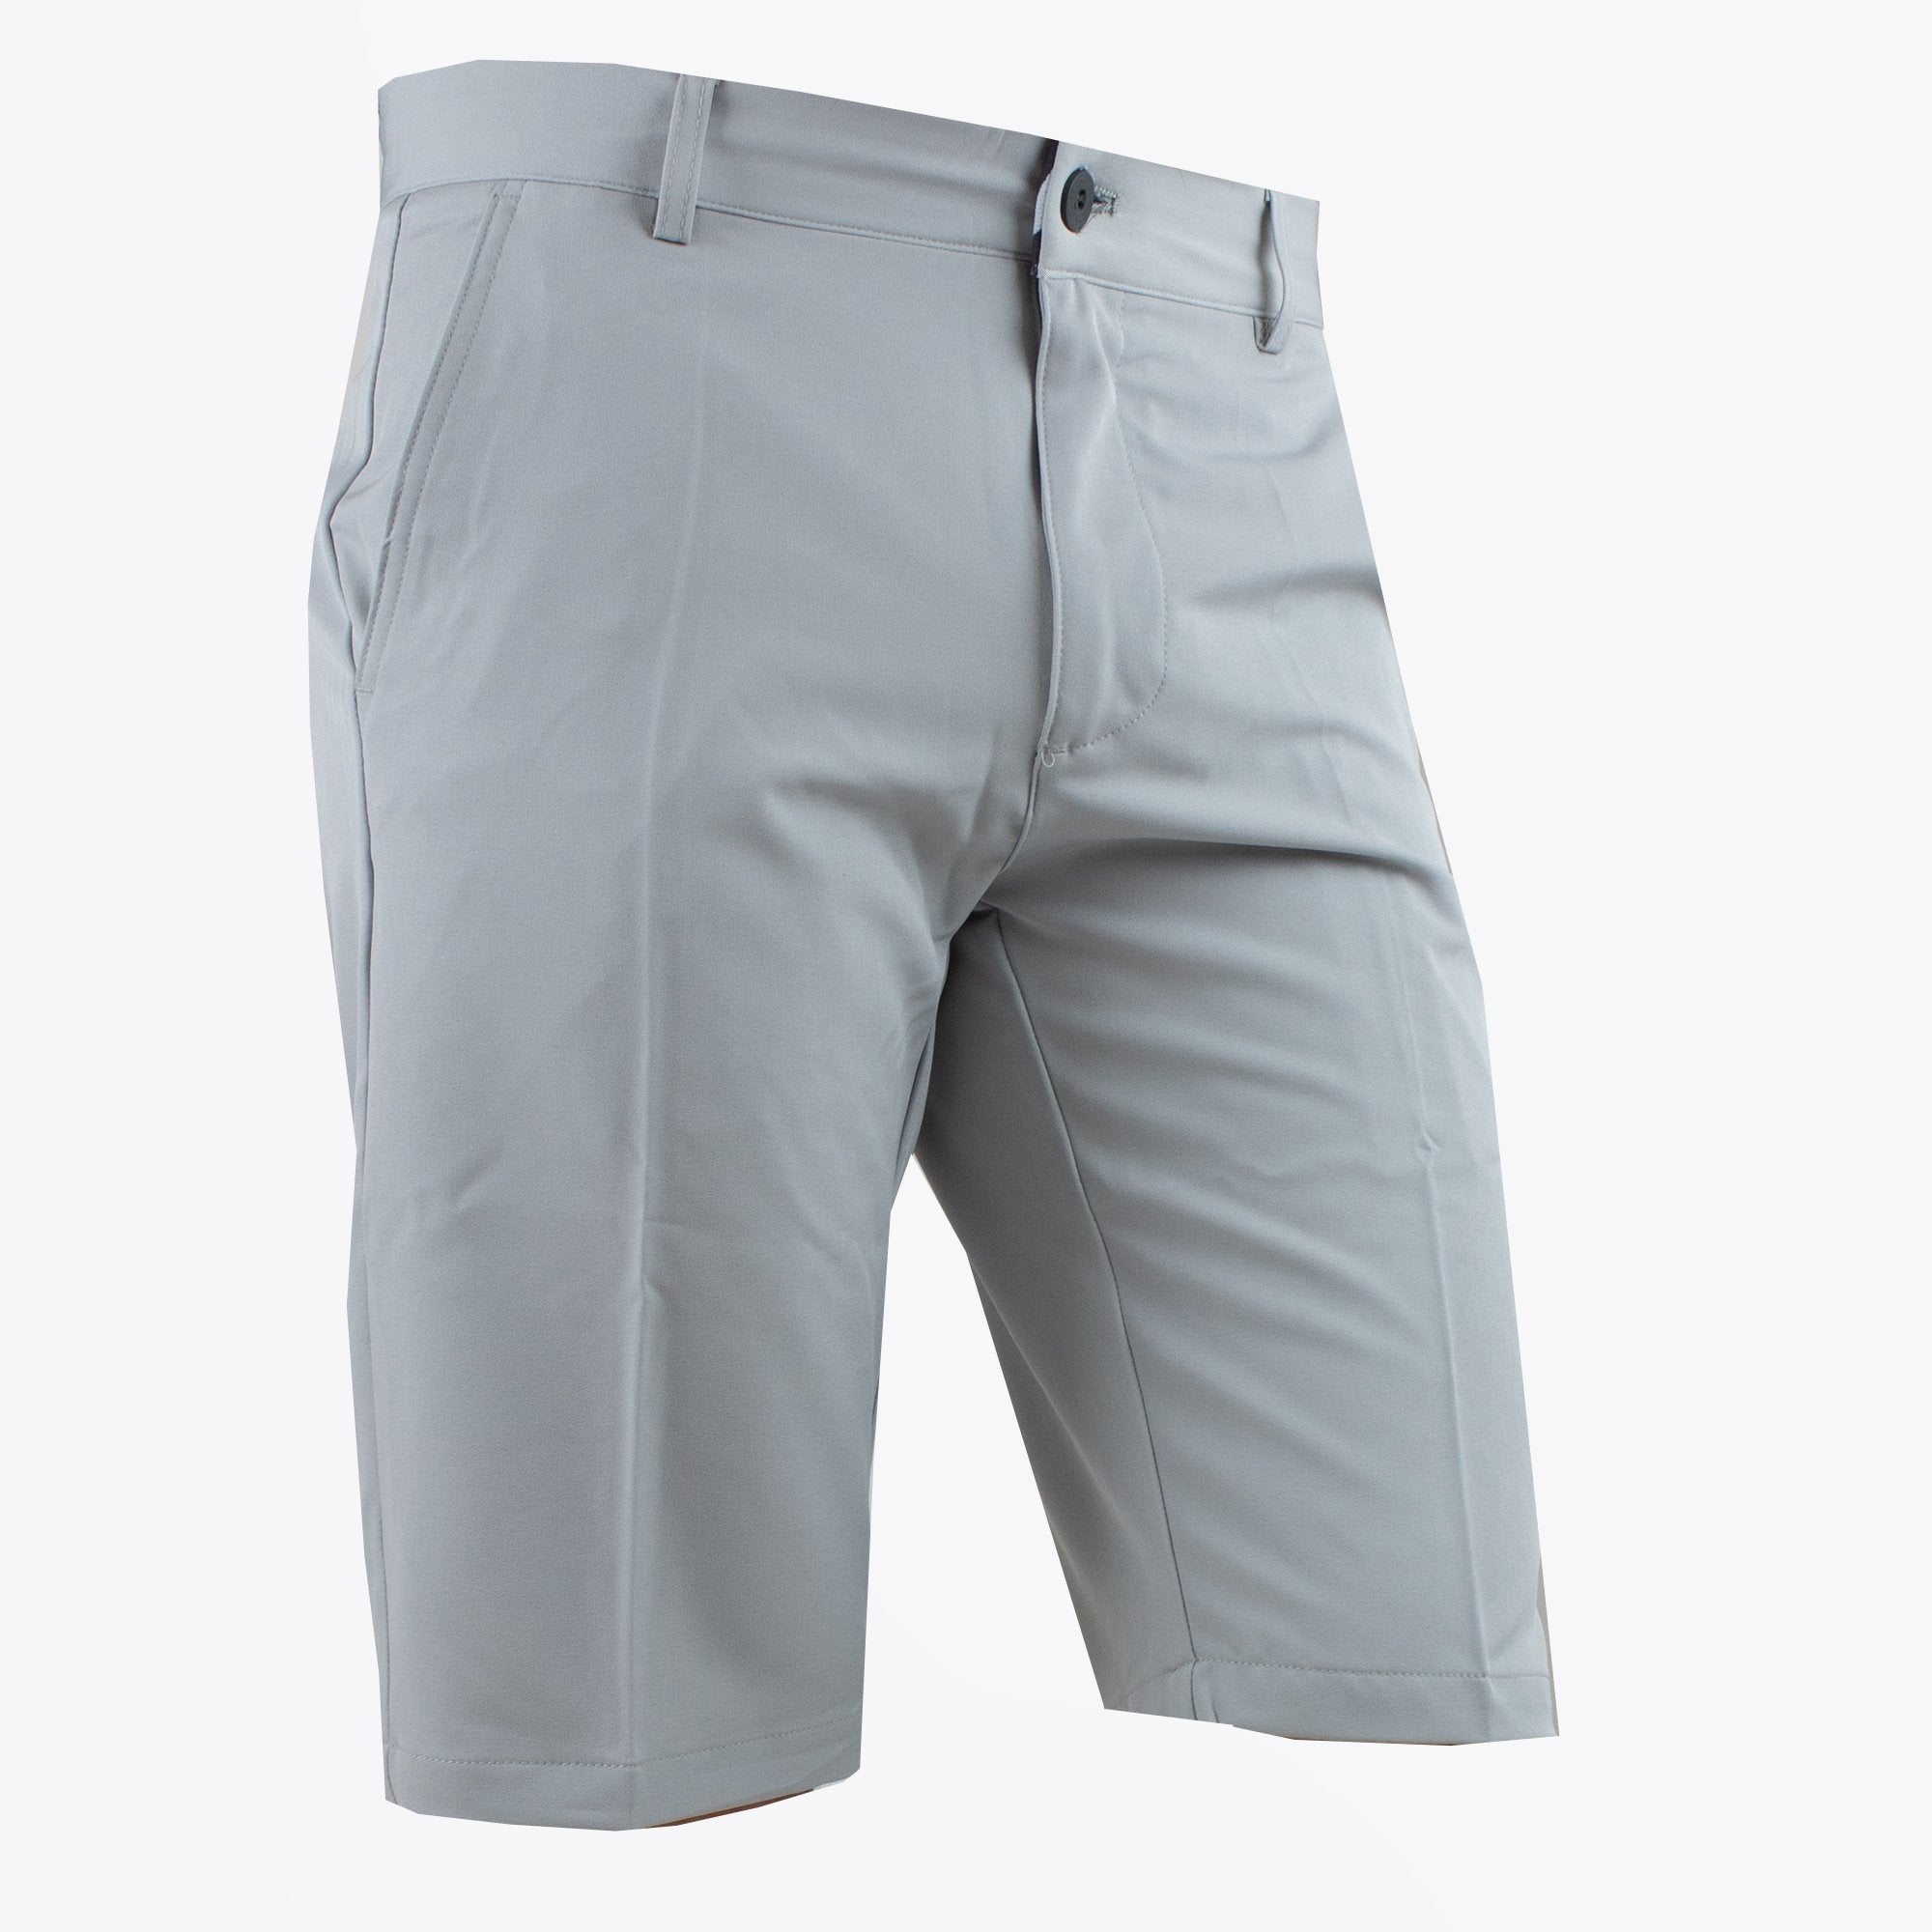 Druids Golf - Mens Clima Shorts (Grey)